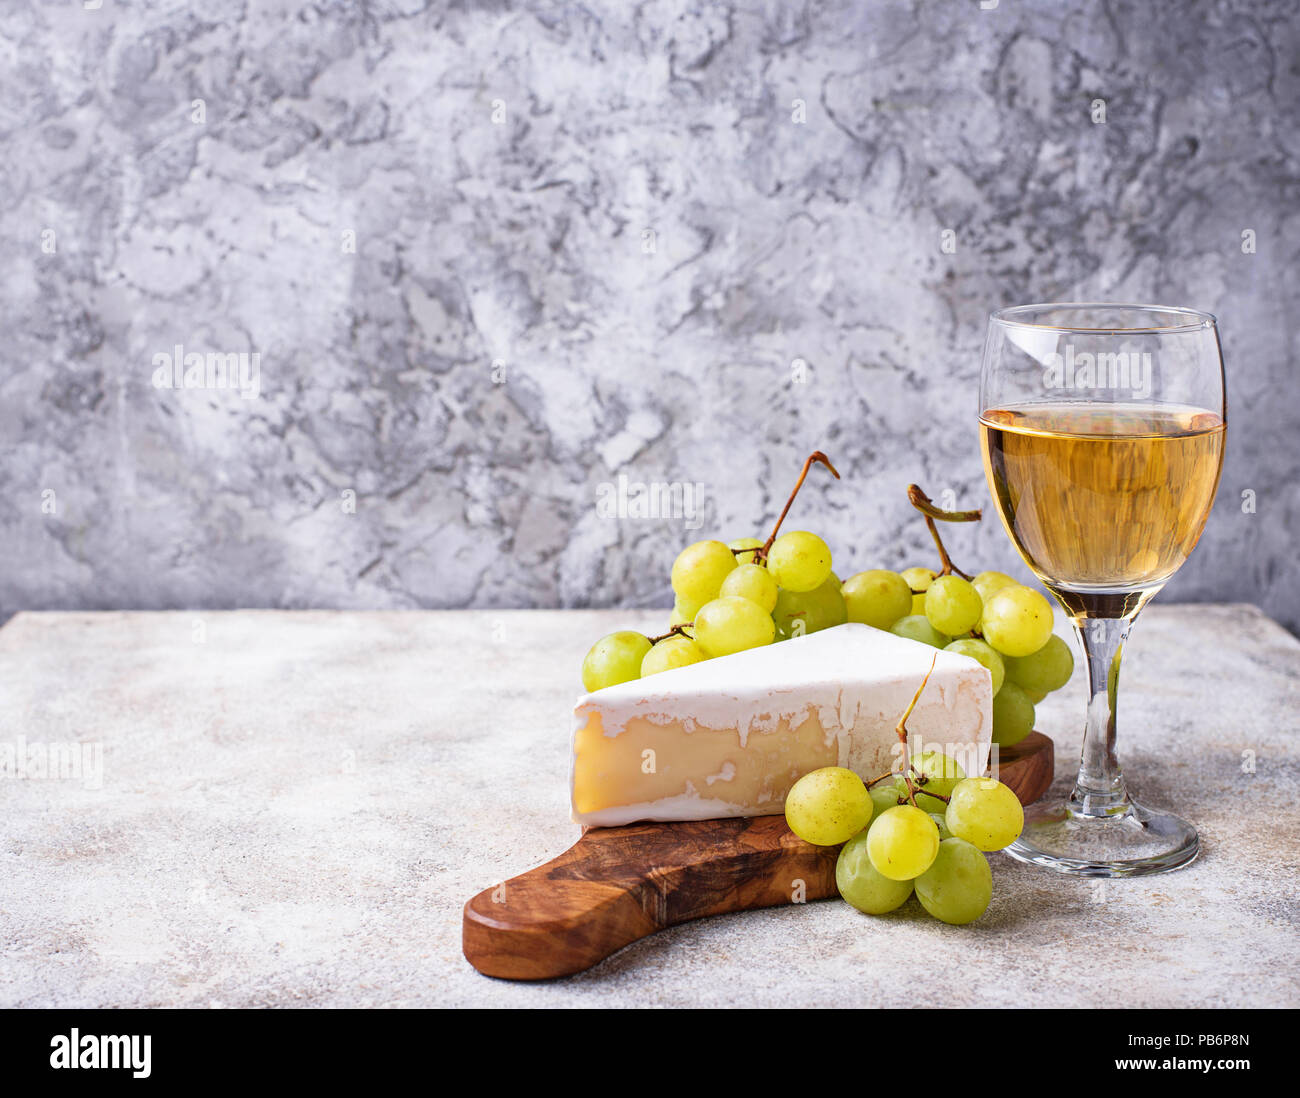 Cheese brie, grape and wine - Stock Image